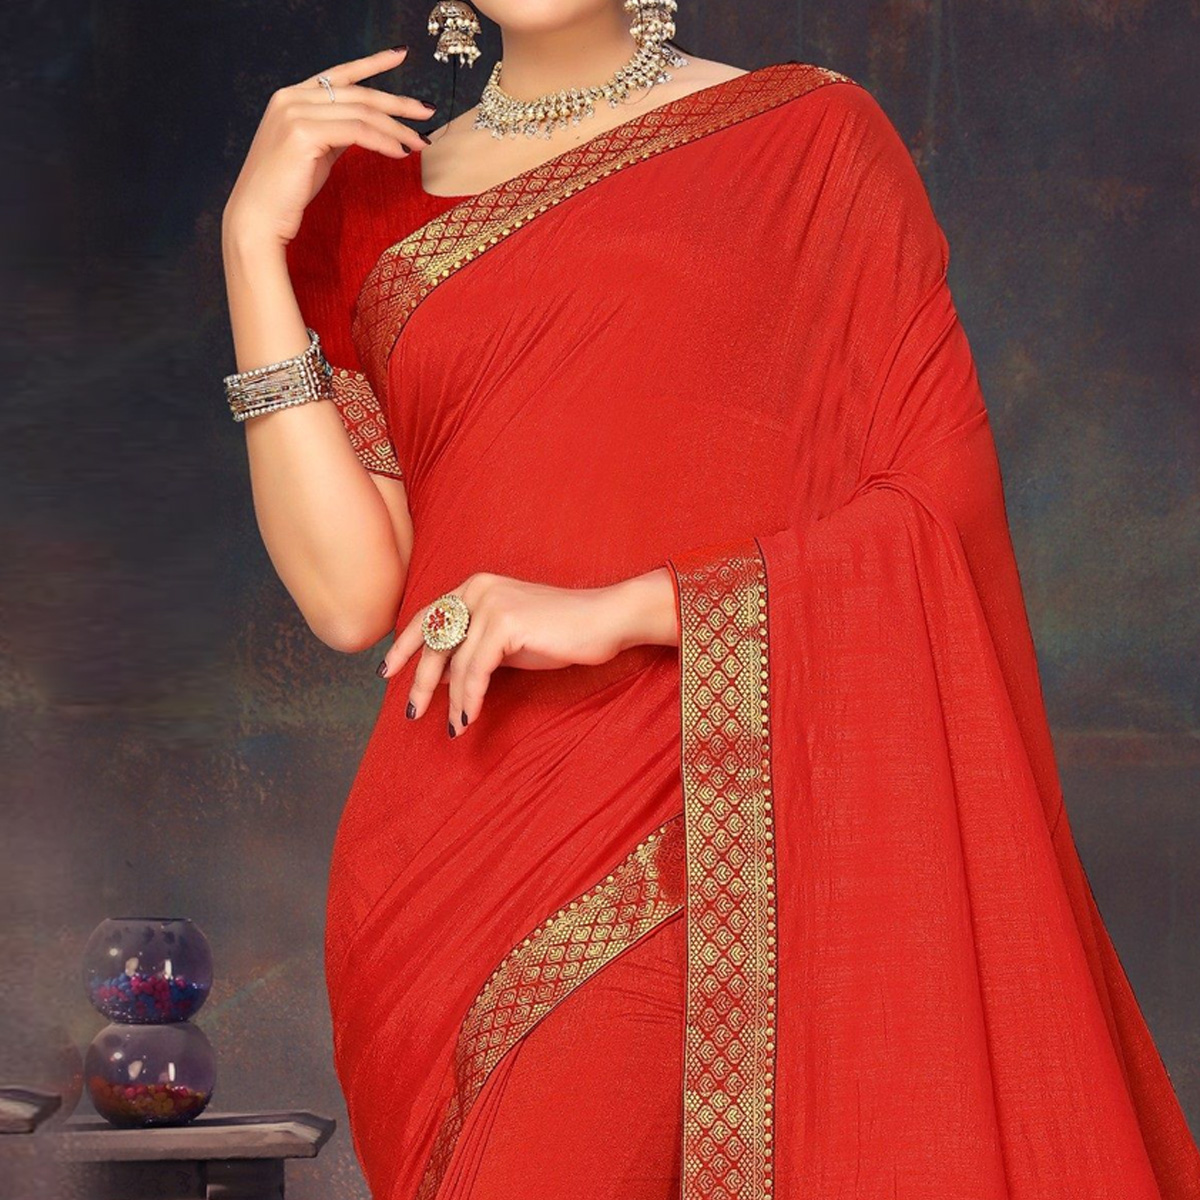 Marvellous Red Colored Festive Wear Lace Work Vichitra Silk Saree